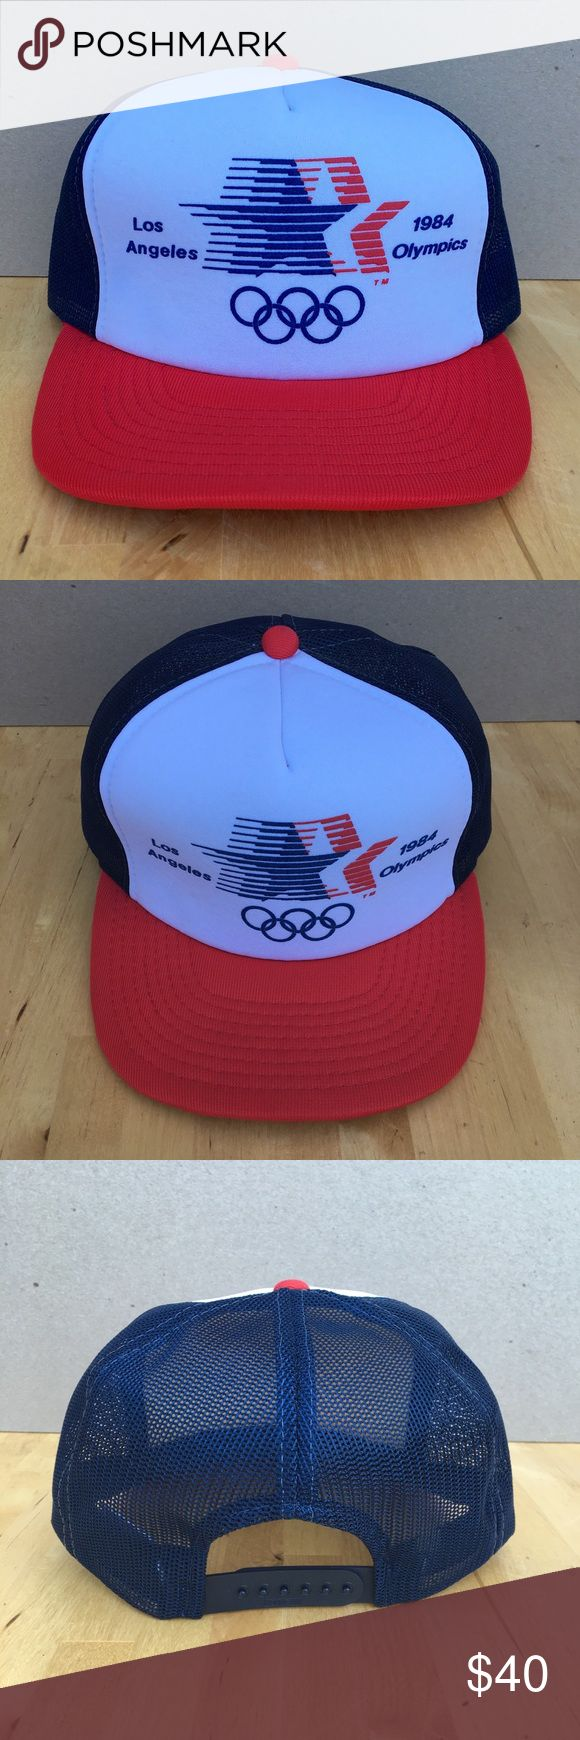 I just added this listing on Poshmark: 1984 Los Angeles Olympic Games mesh hat official. #shopmycloset #poshmark #fashion #shopping #style #forsale #Other